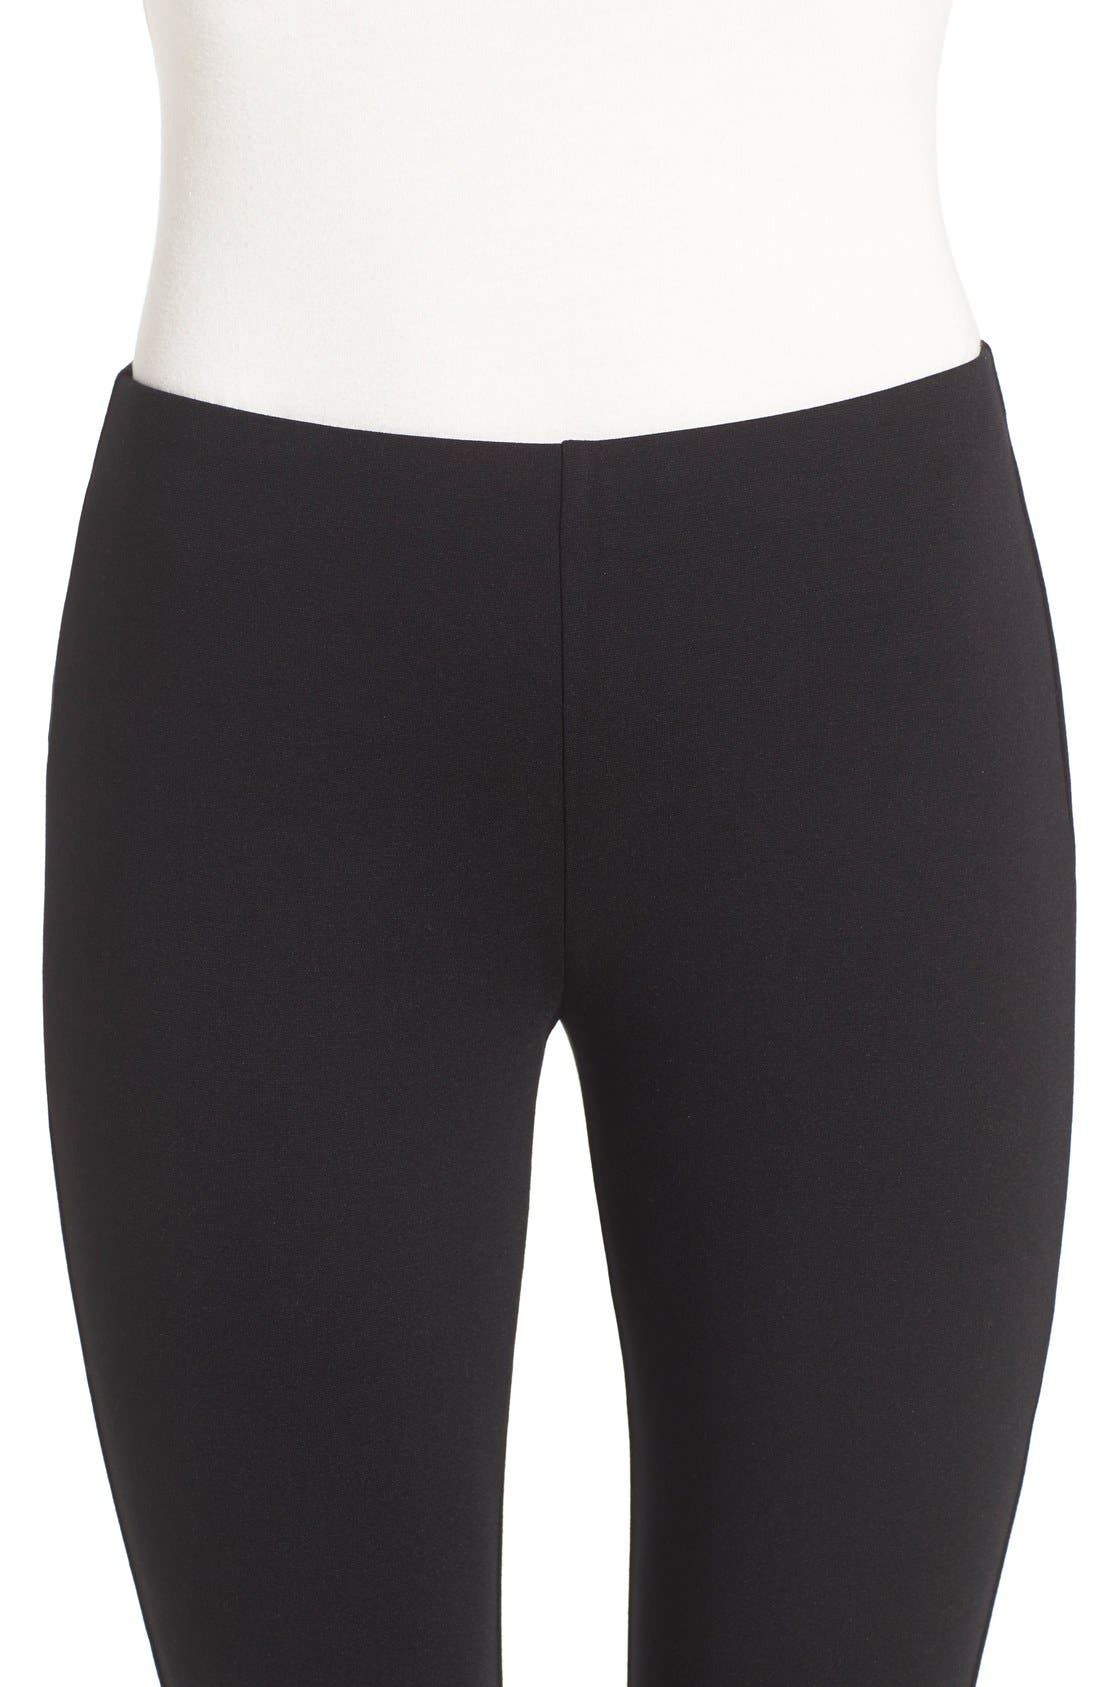 Alternate Image 4  - Eileen Fisher Slim Ponte Knit Pants (Regular & Petite)